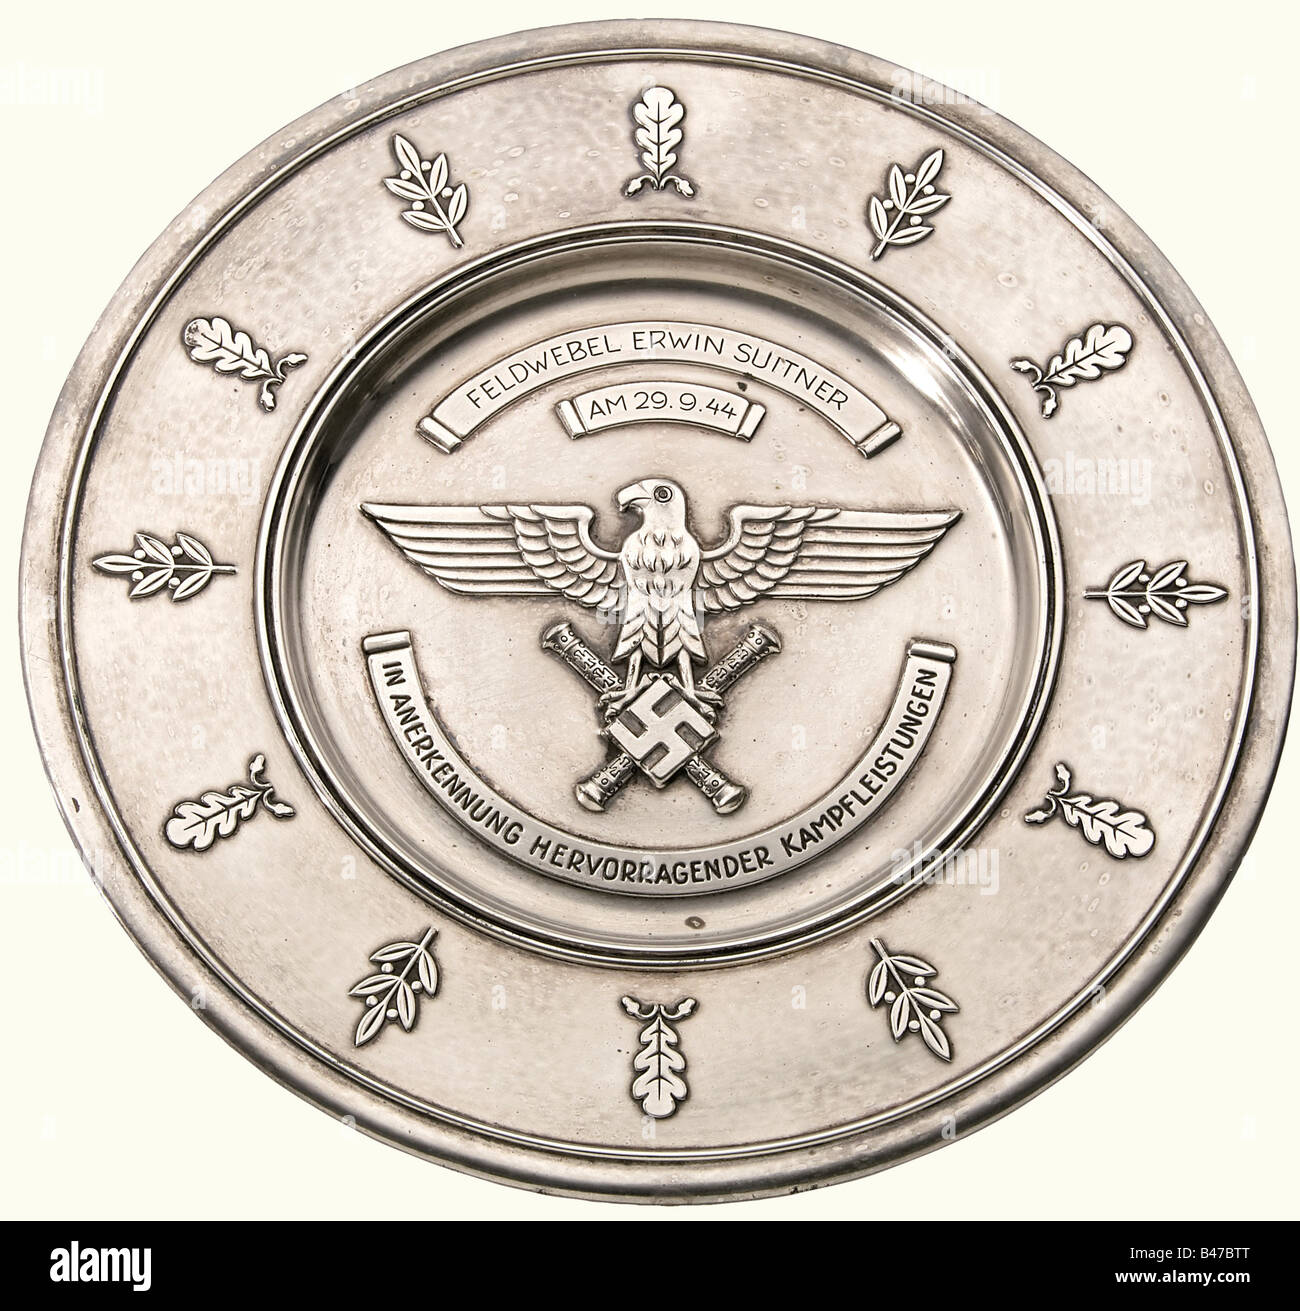 A Luftwaffe honour salver for Outstanding Combat Performance, awarded to Feldwebel Erwin Suitner Stamped bowl of - Stock Image